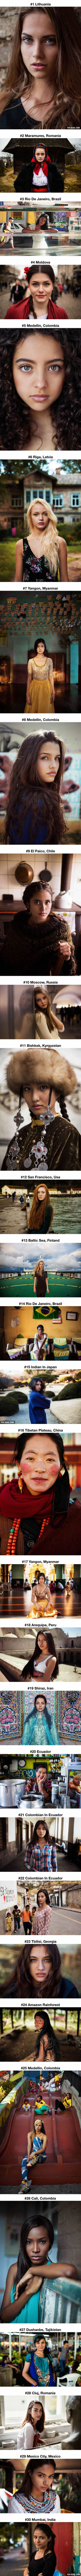 60 Photos Of Women From Around The World Show That Beauty Is Everywhere (Part 1) (By Mihaela Noroc)